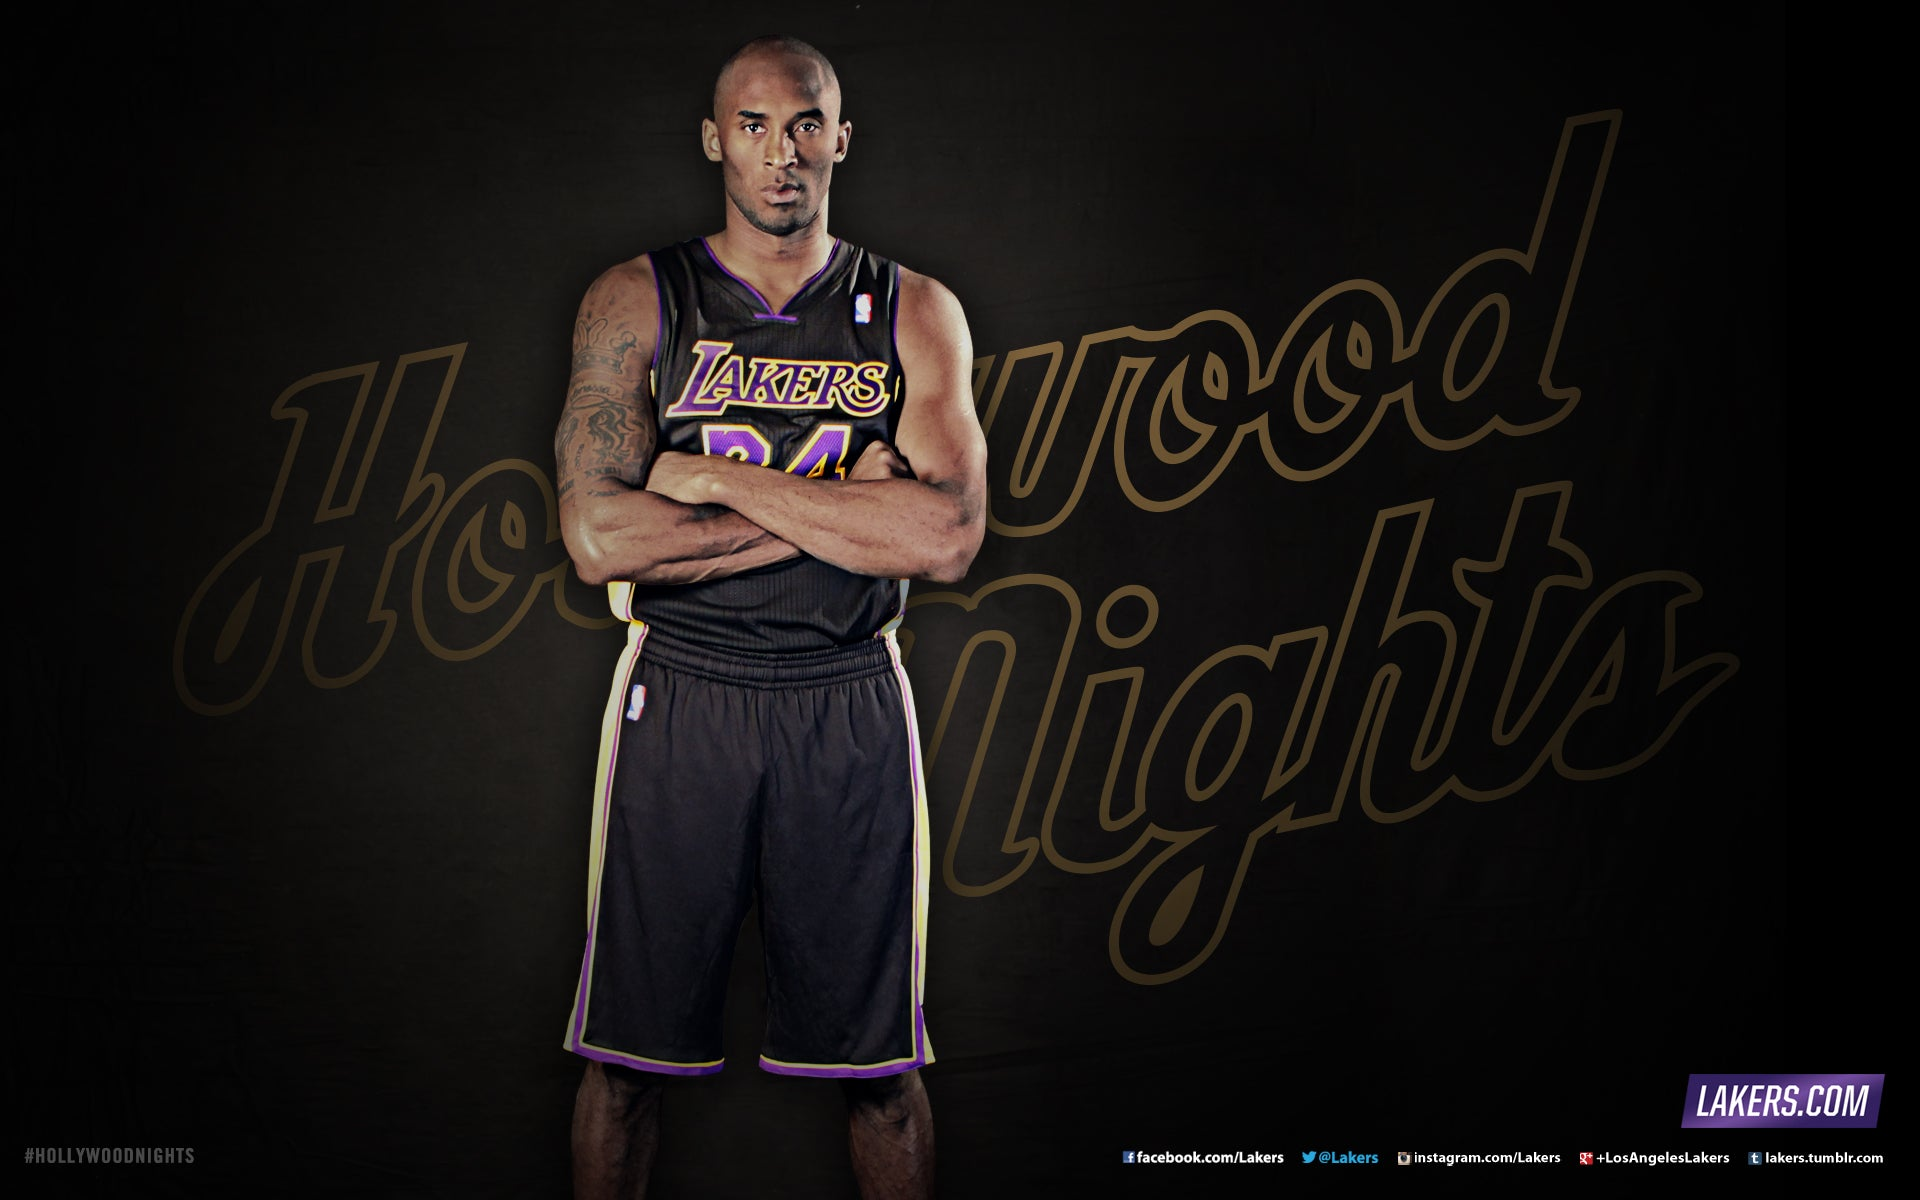 kobe-bryant-hollywood-nights-jersey